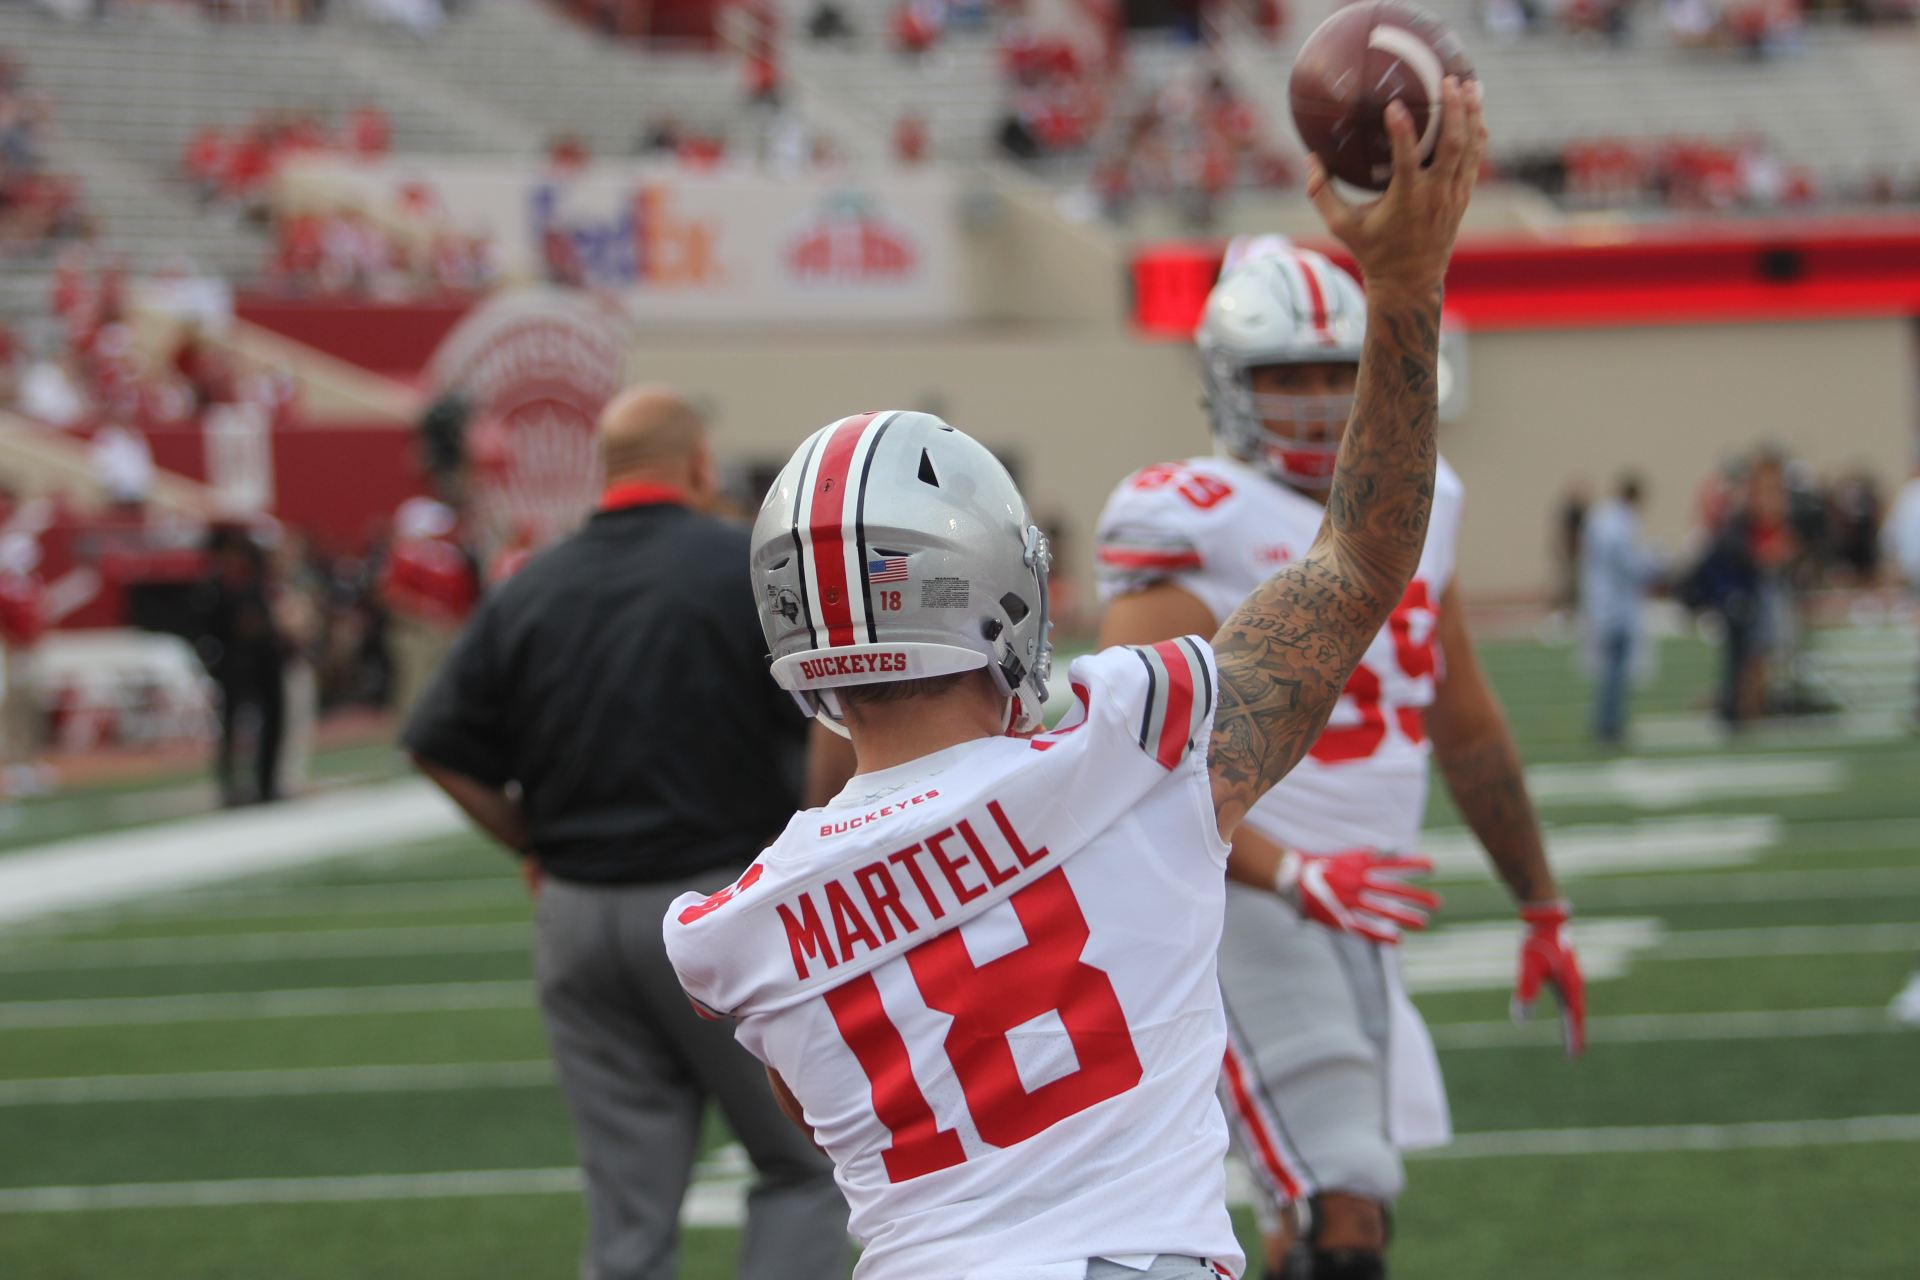 OSU quarterback battle between Haskins, Burrow and Martell ...